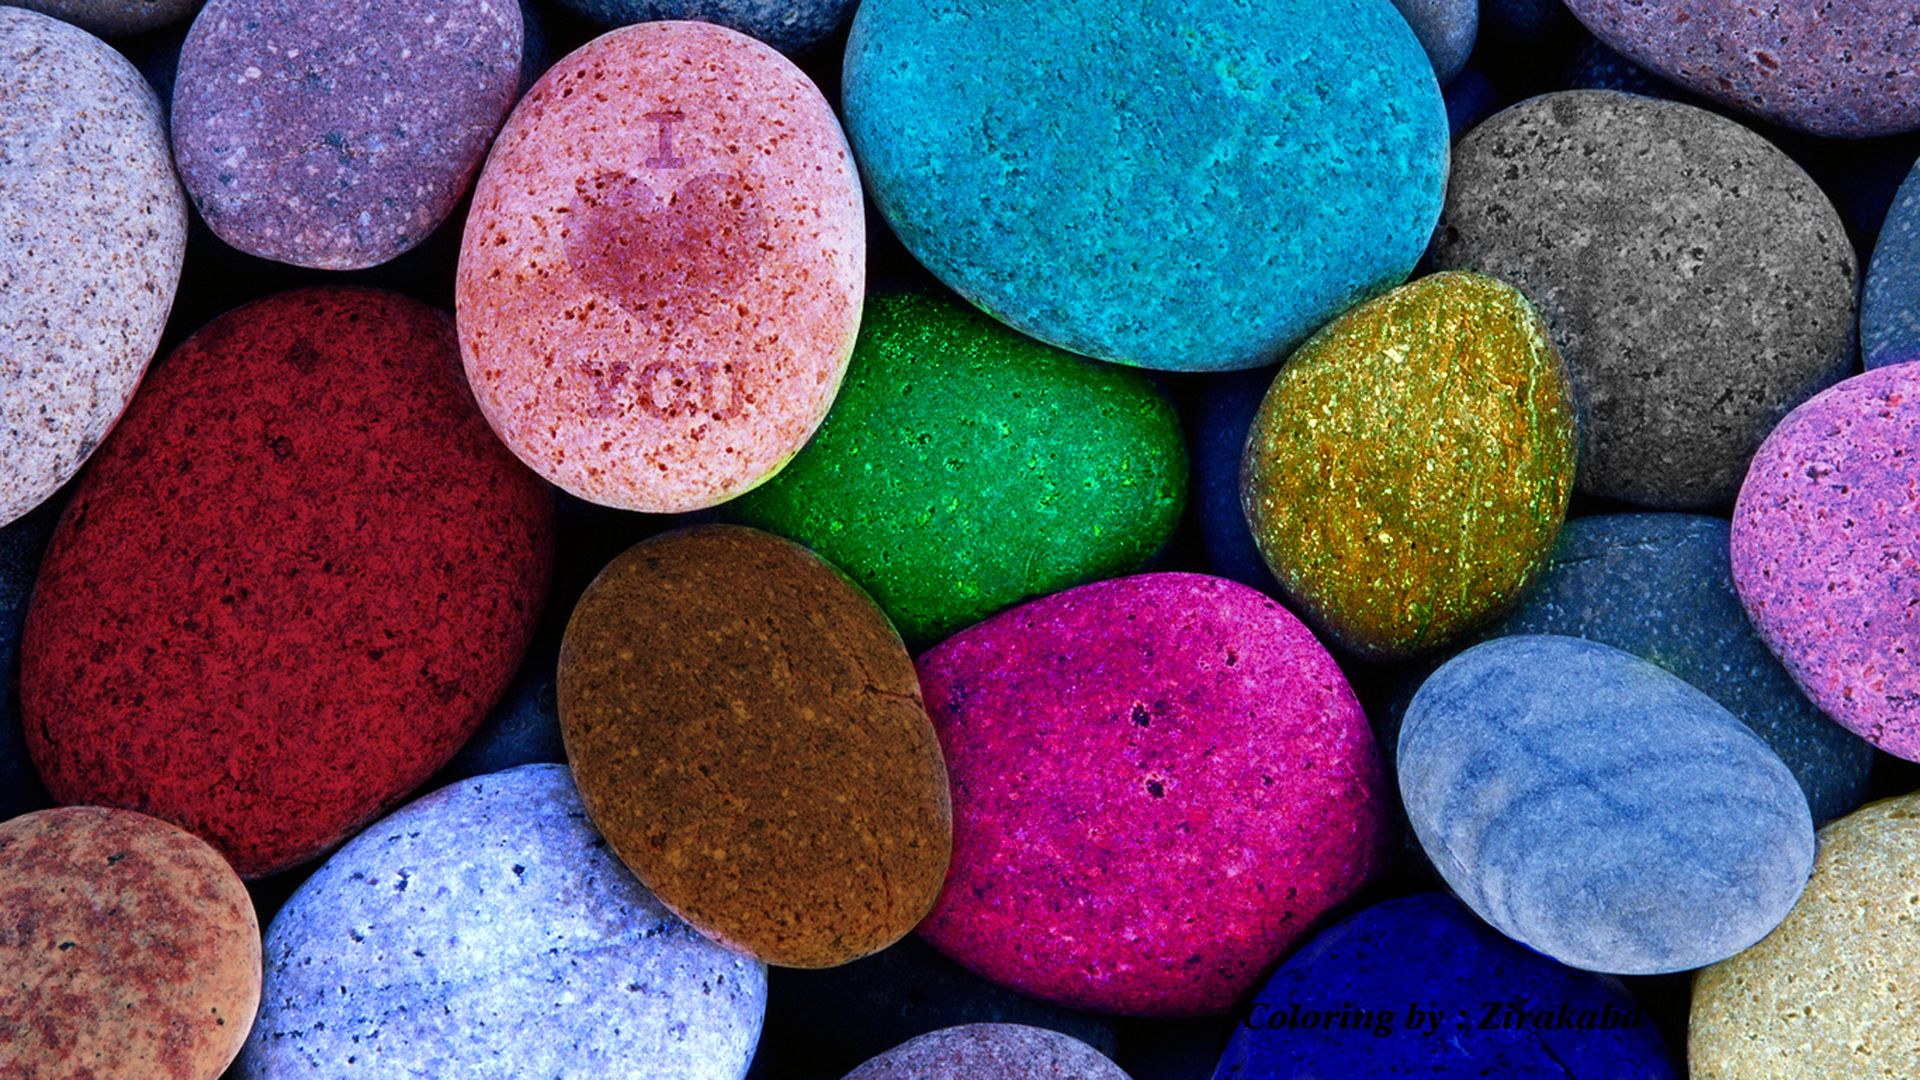 Colored Stones Google Search One Minute Party Games Stone Wallpaper Apple Logo Wallpaper Iphone